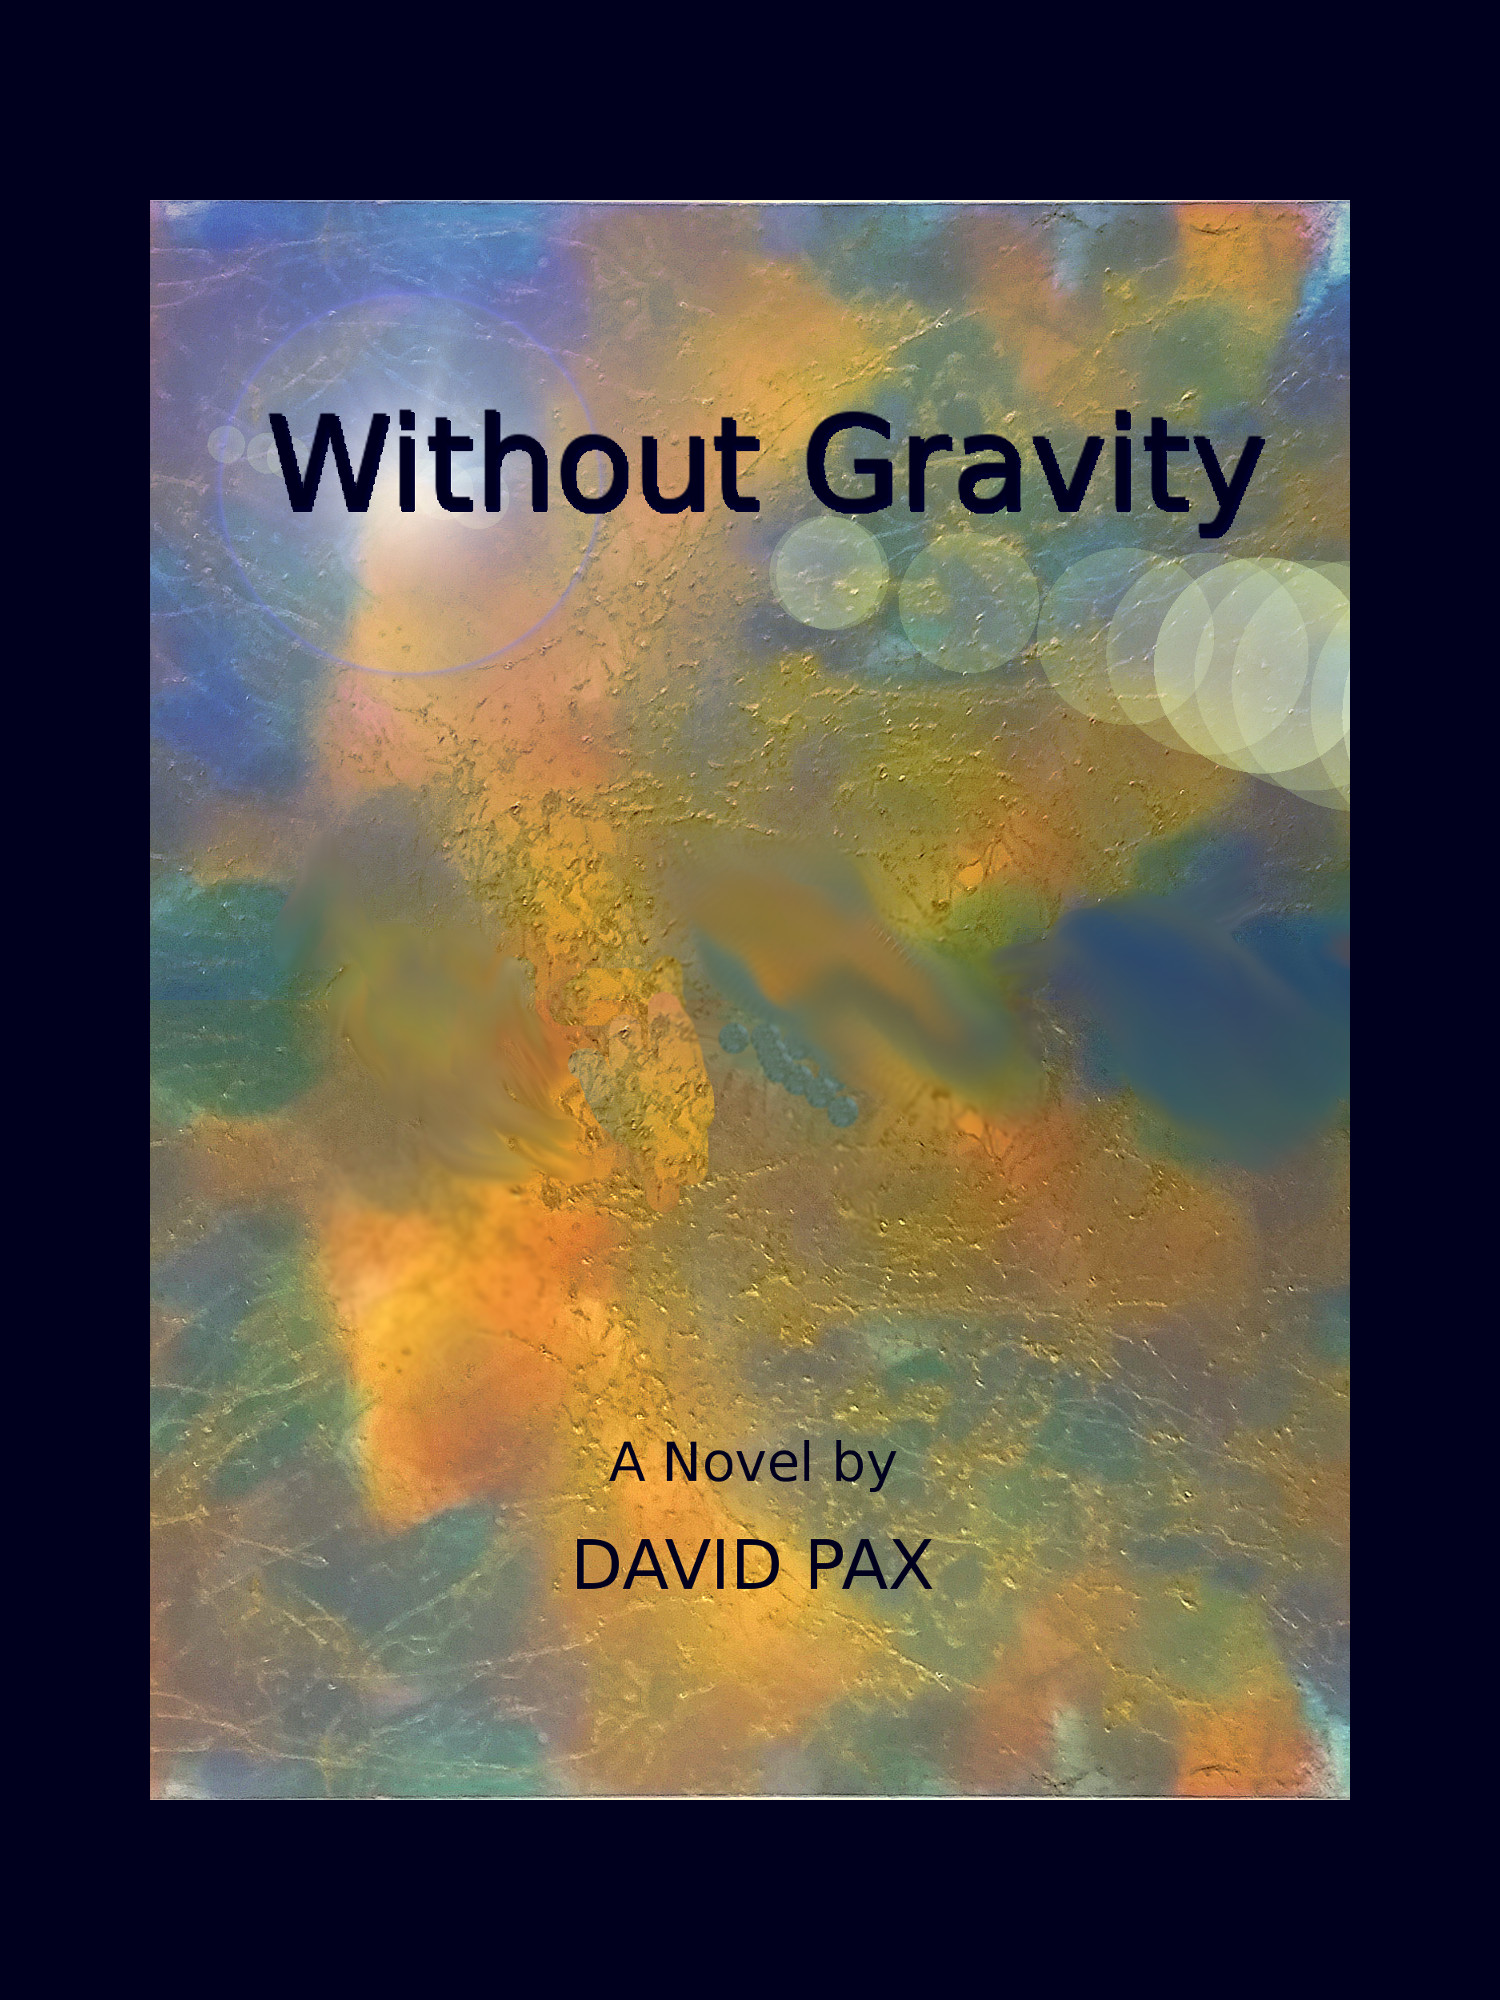 withoutgravitycover20180717.jpg